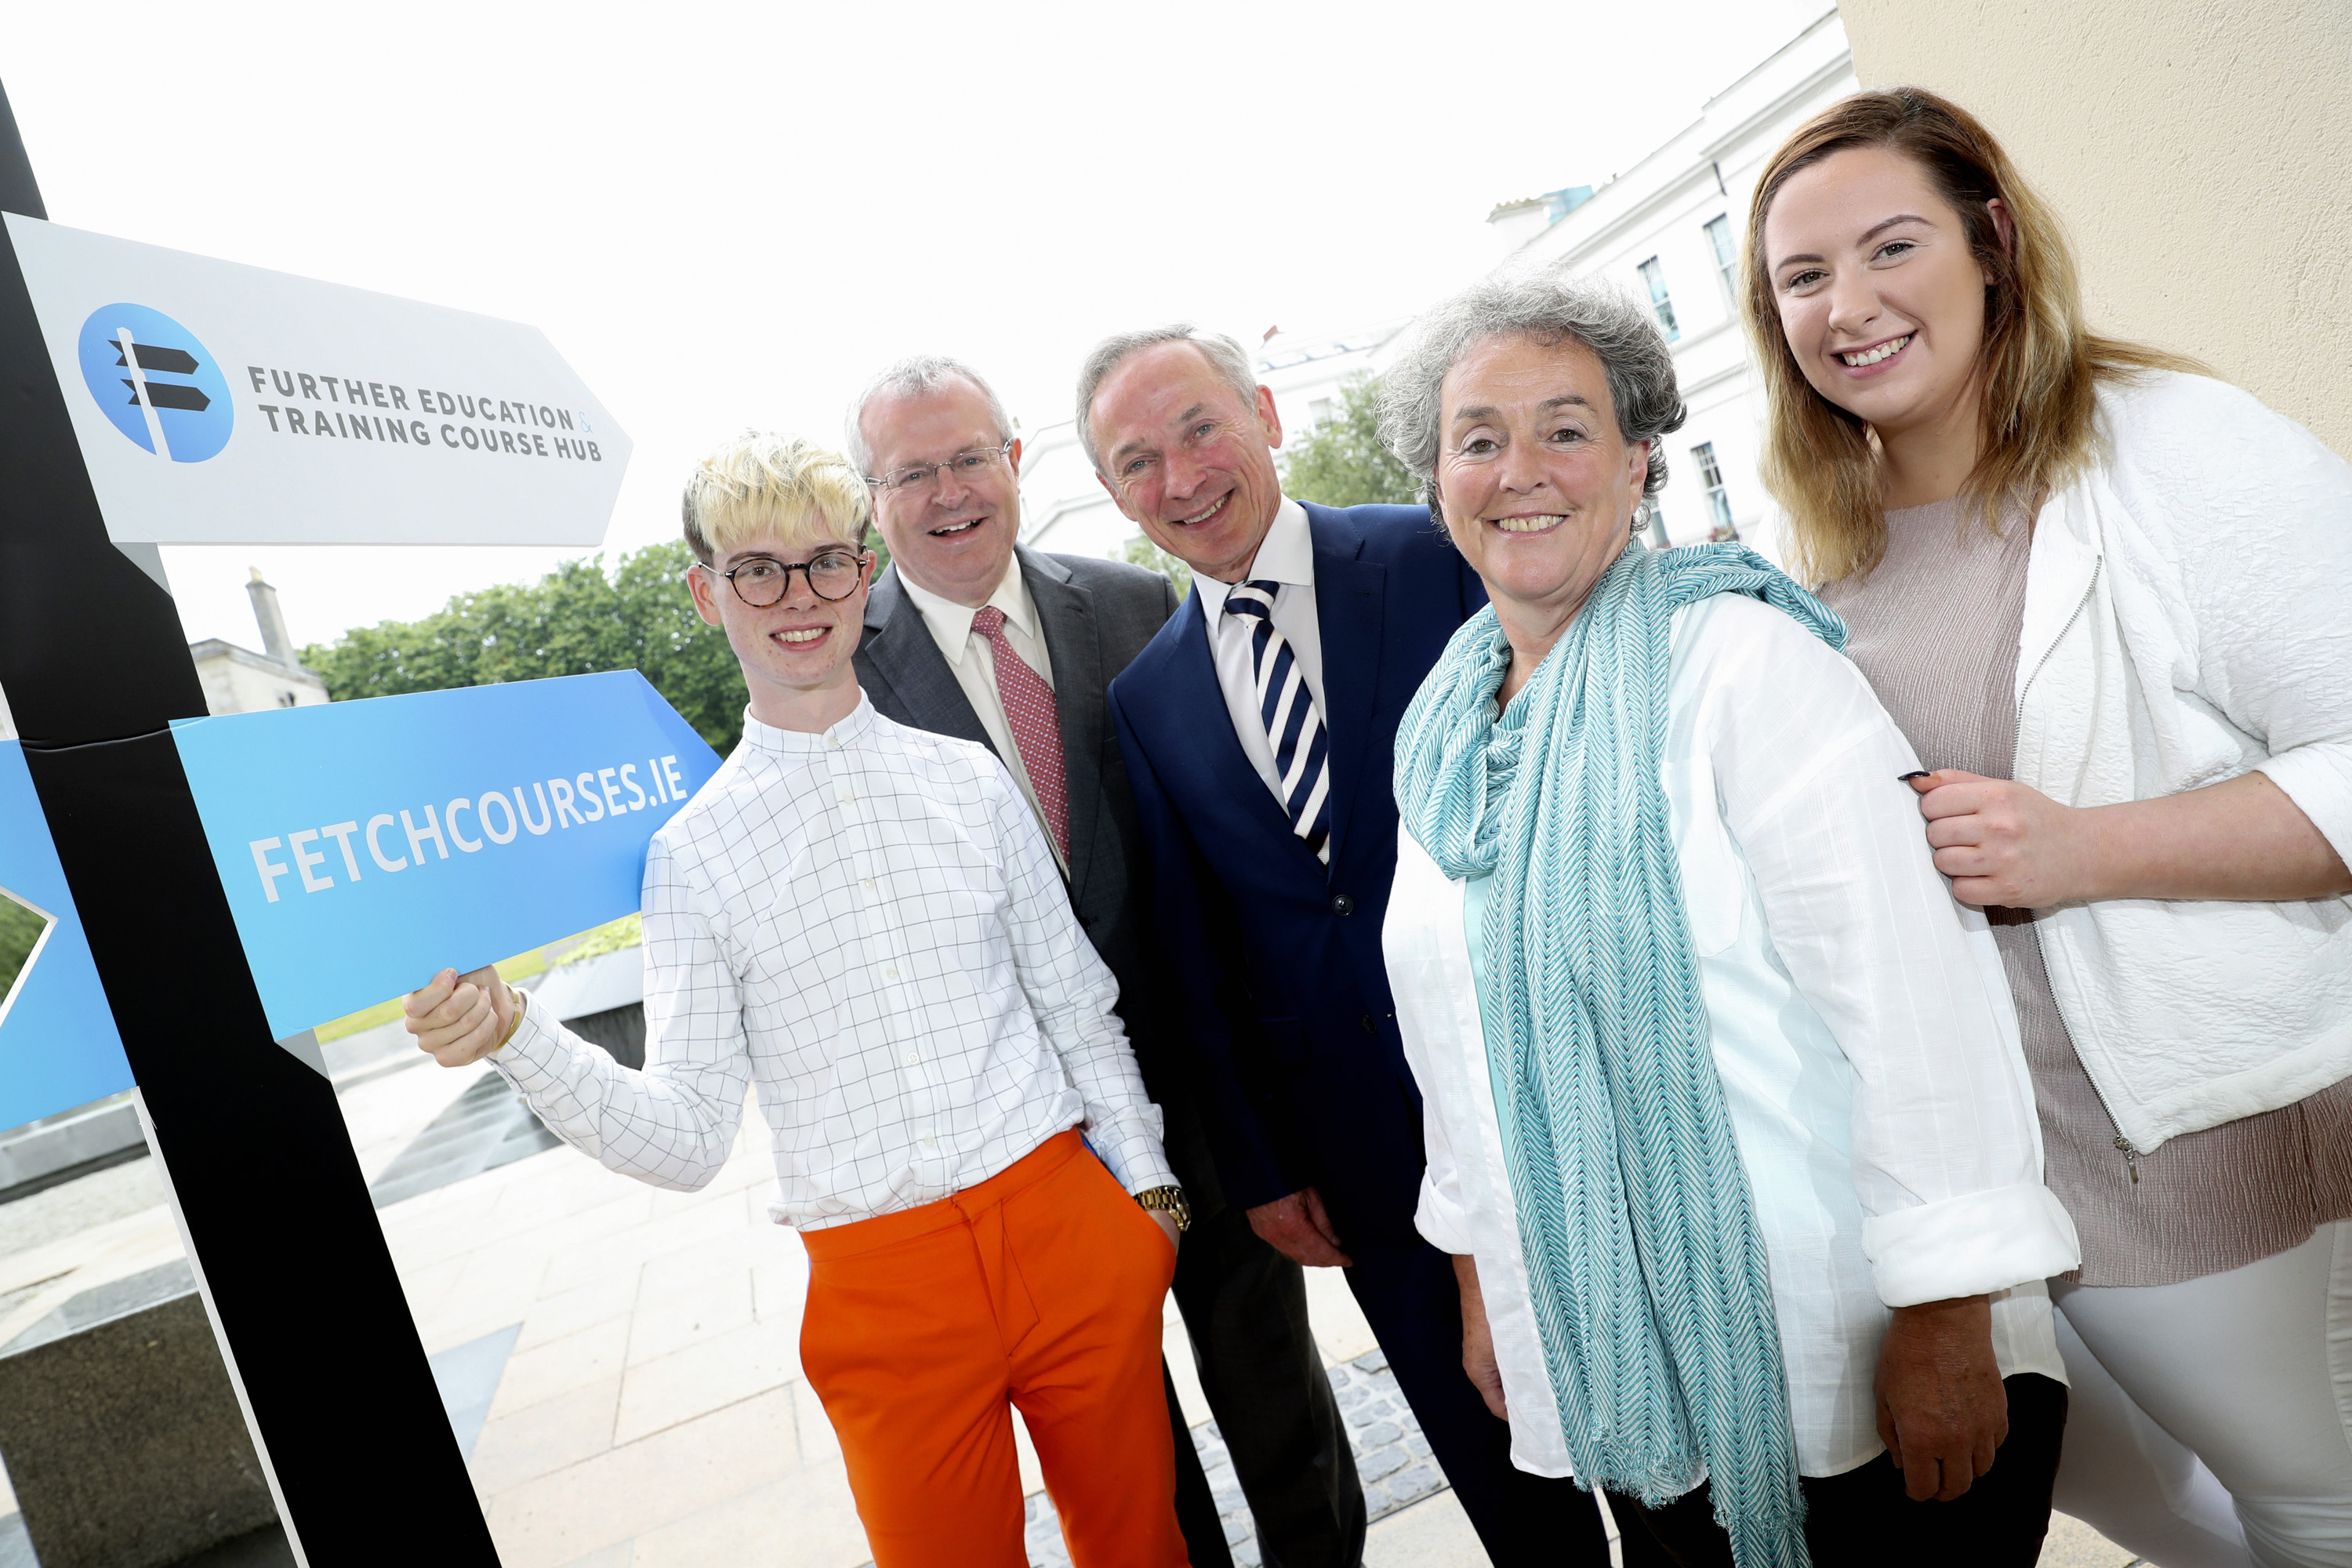 New one-stop hub for Further Education & Training Courses